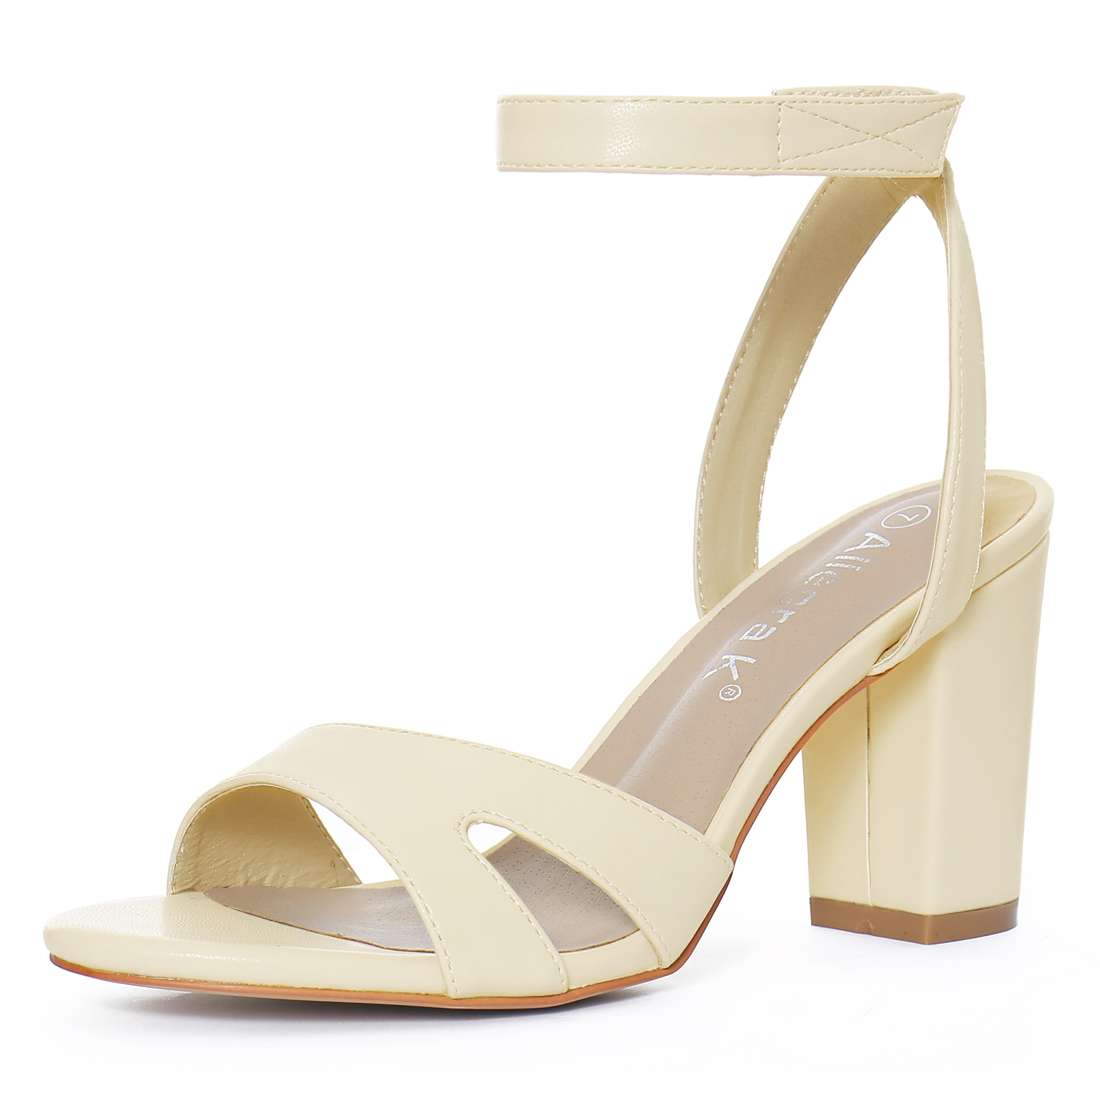 Women Open Toe Block High Heels Ankle Strap Sandals Off White US 5.5